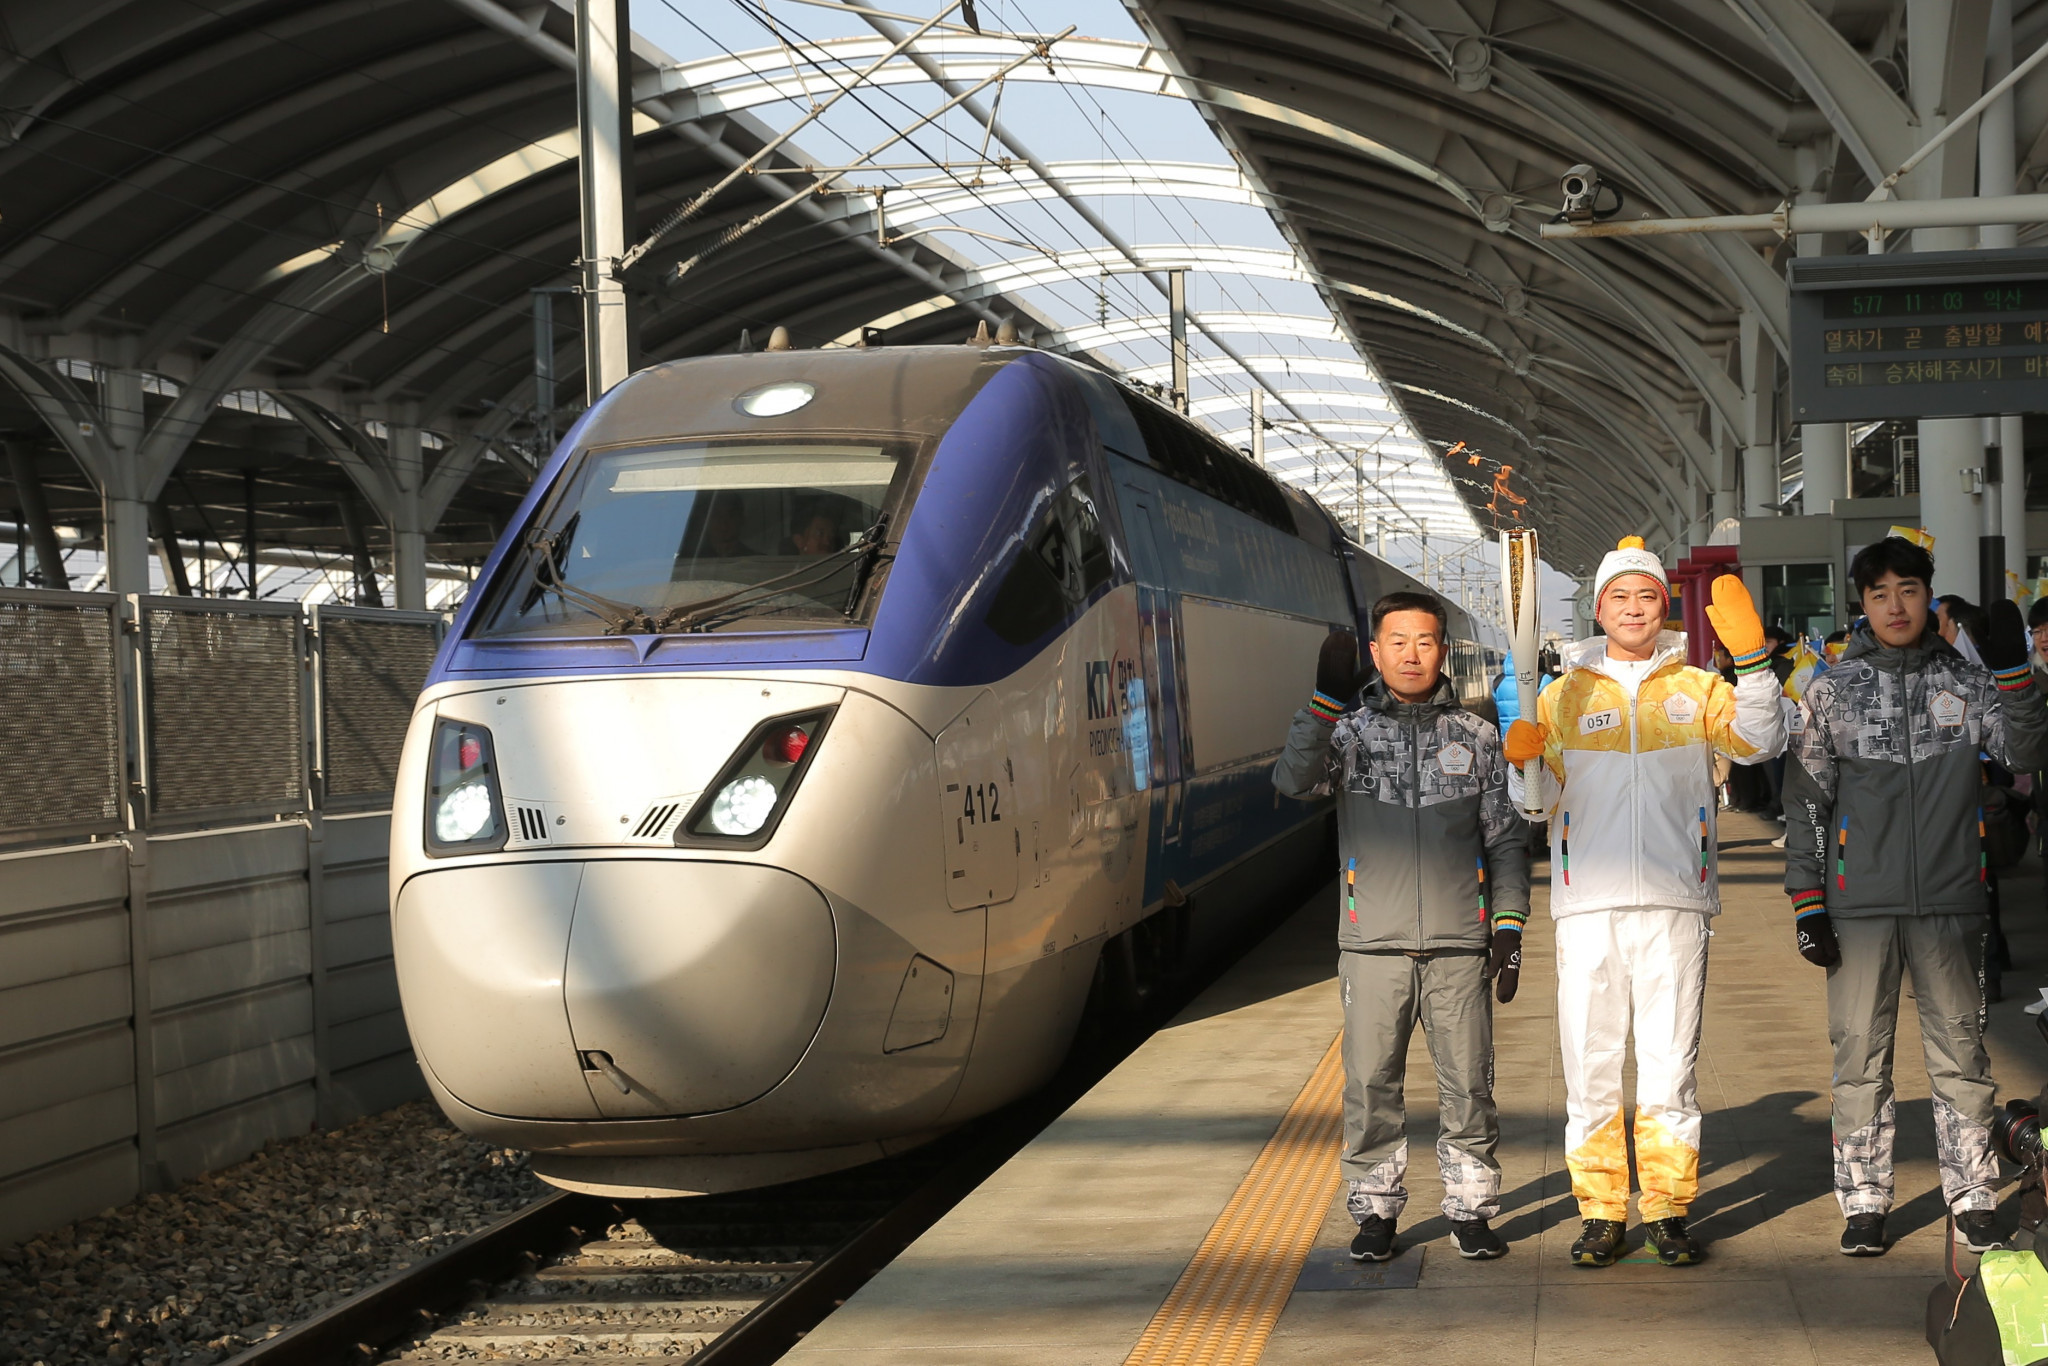 Torch speeds at 300 kilometres an hour aboard a super-fast train and visits the Land That Time Forgot